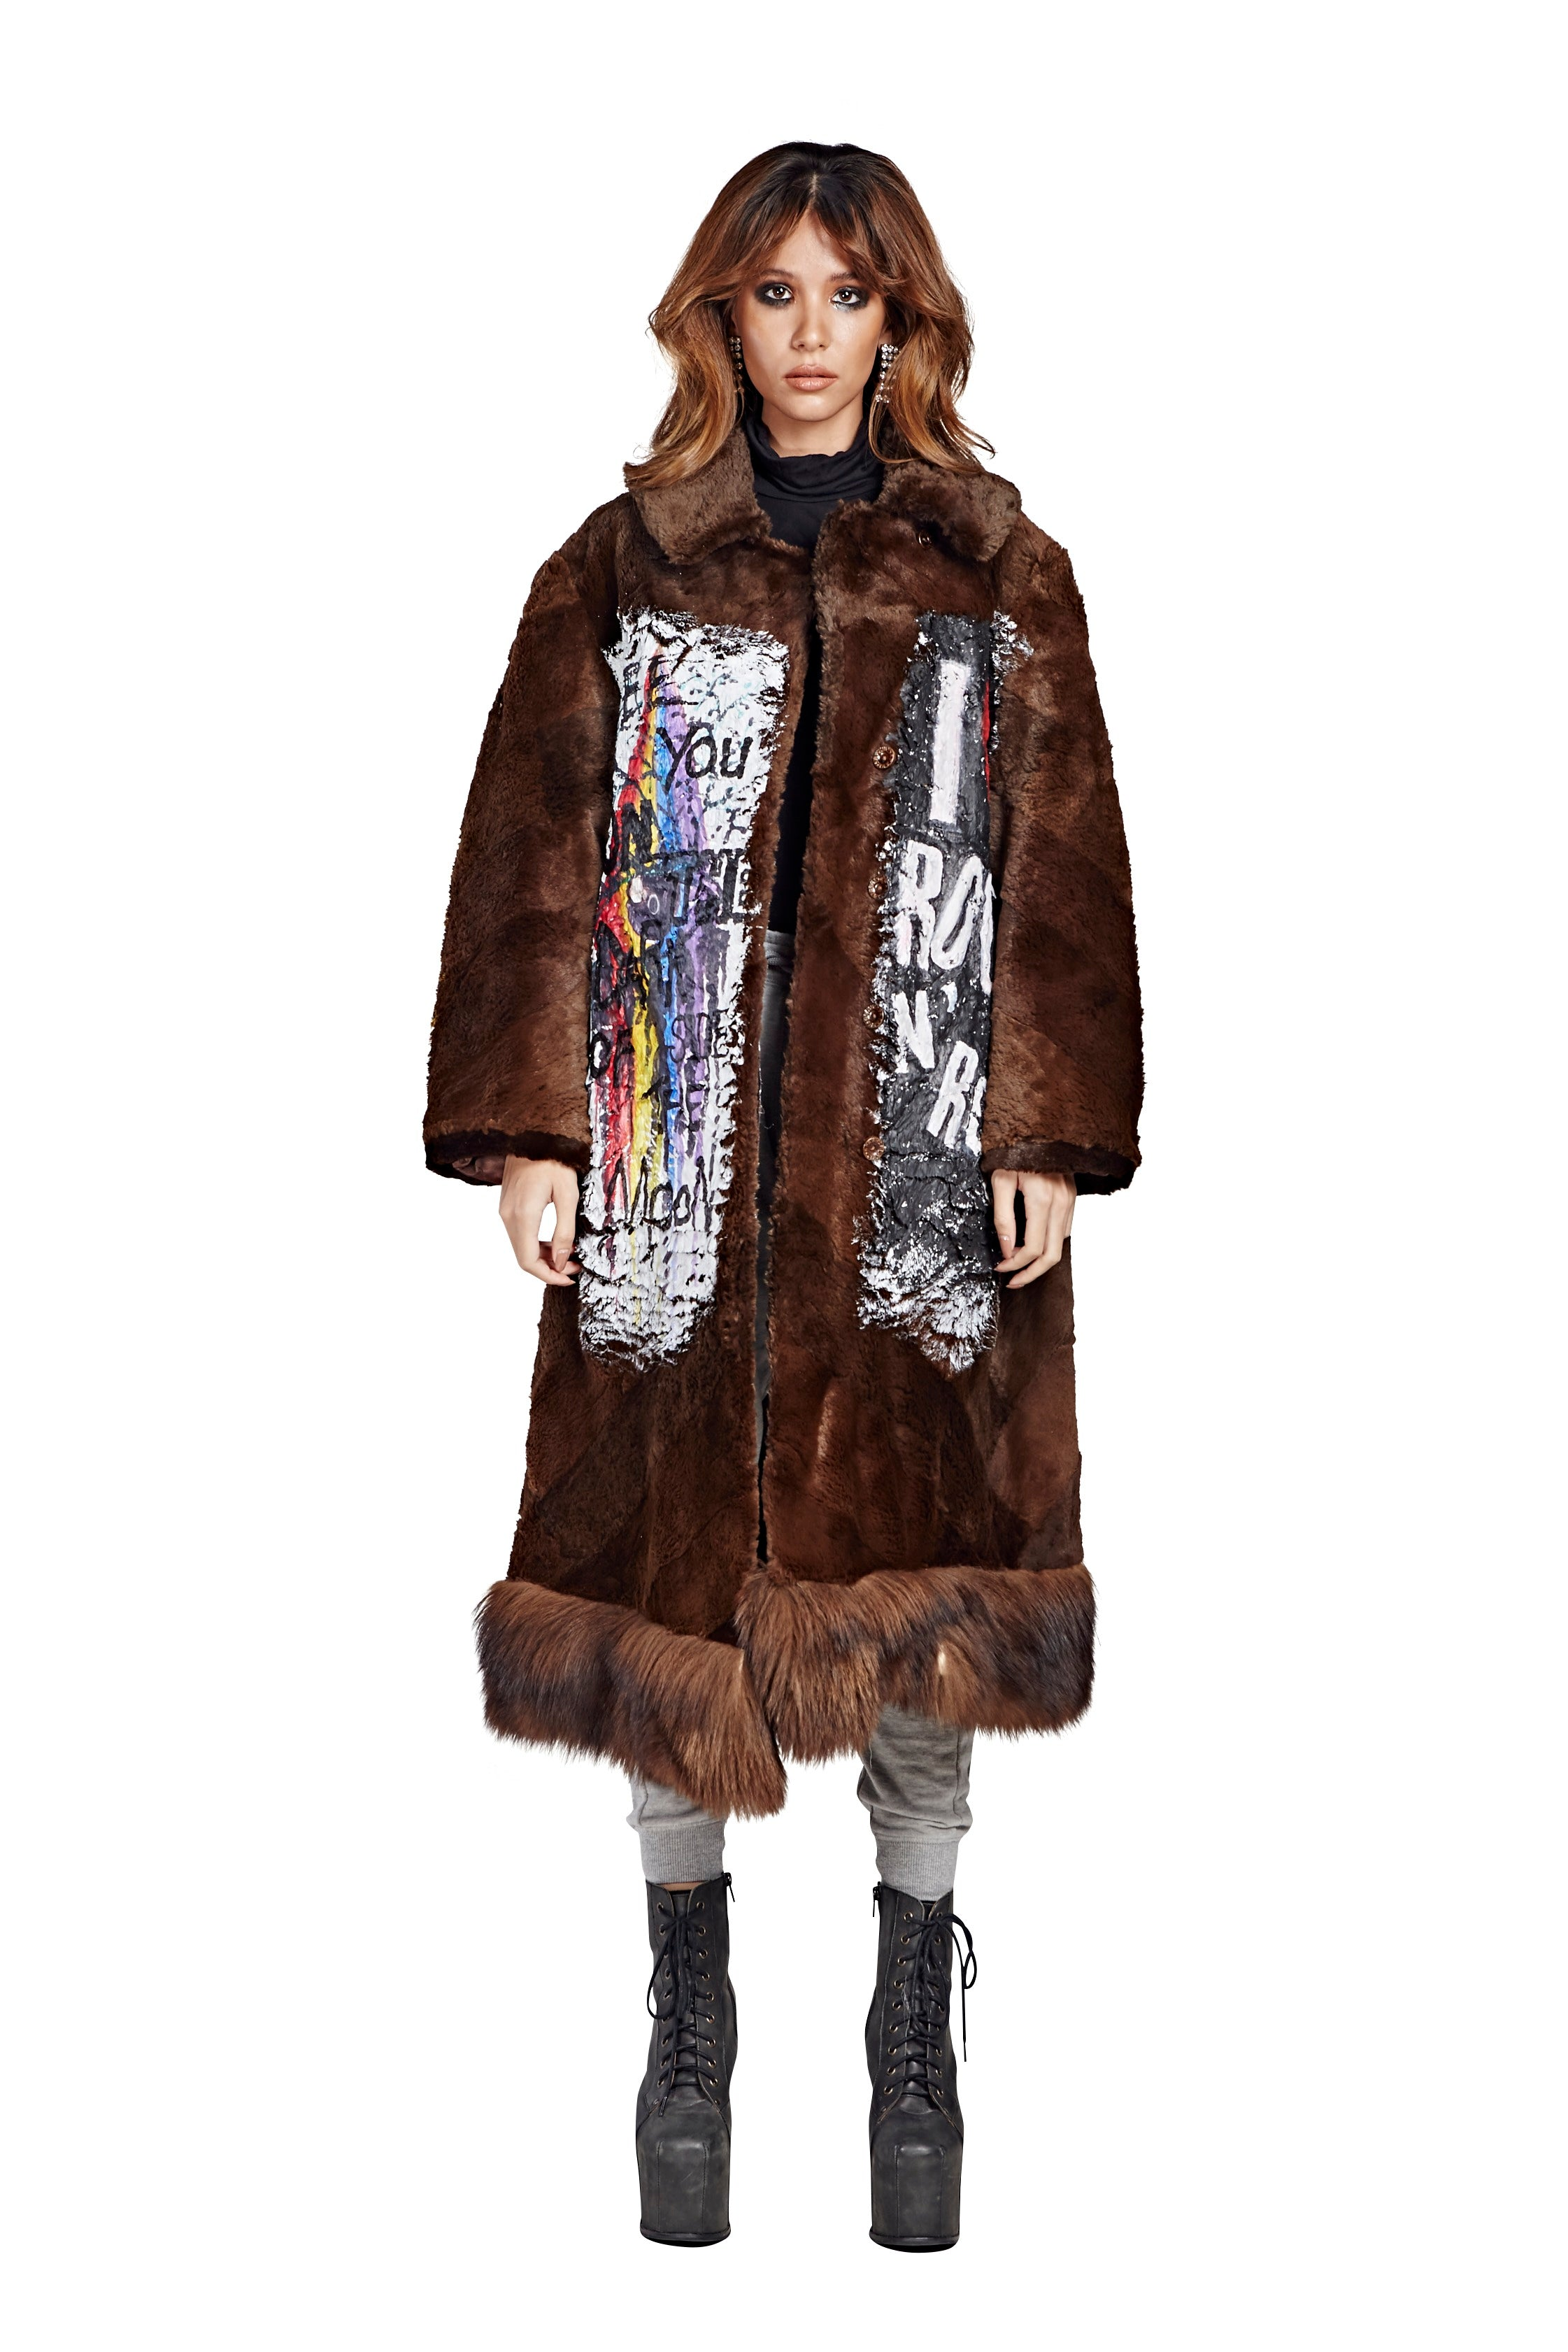 Rock N Roll Fur Coat - Brown Long 2 2017